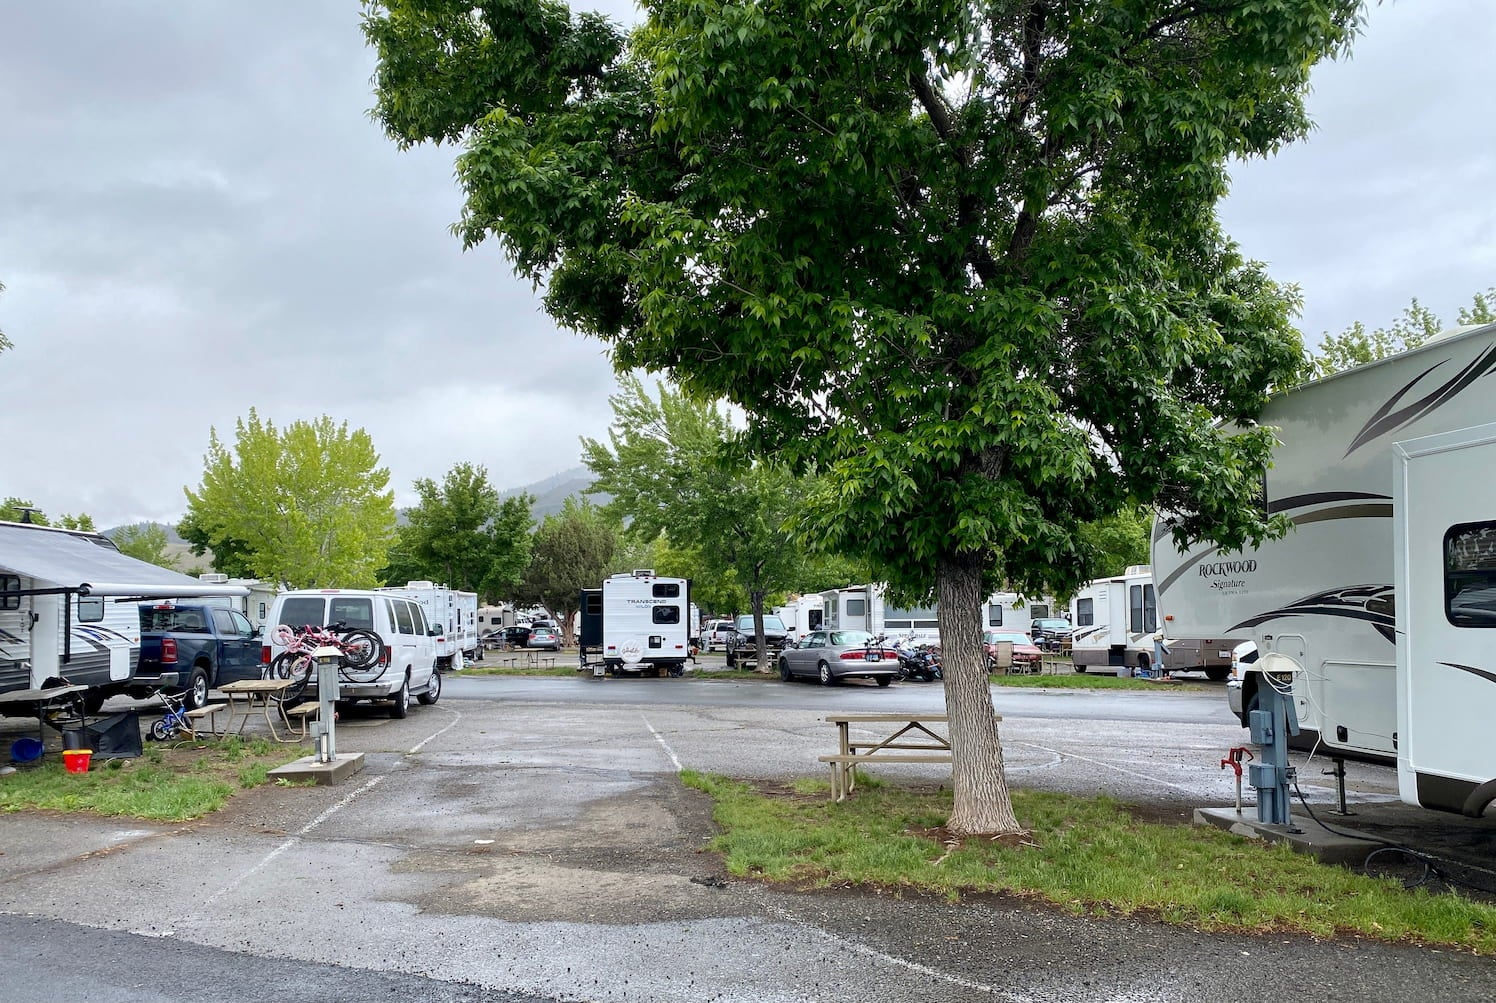 Lush trees and lawn in a paved RV park.